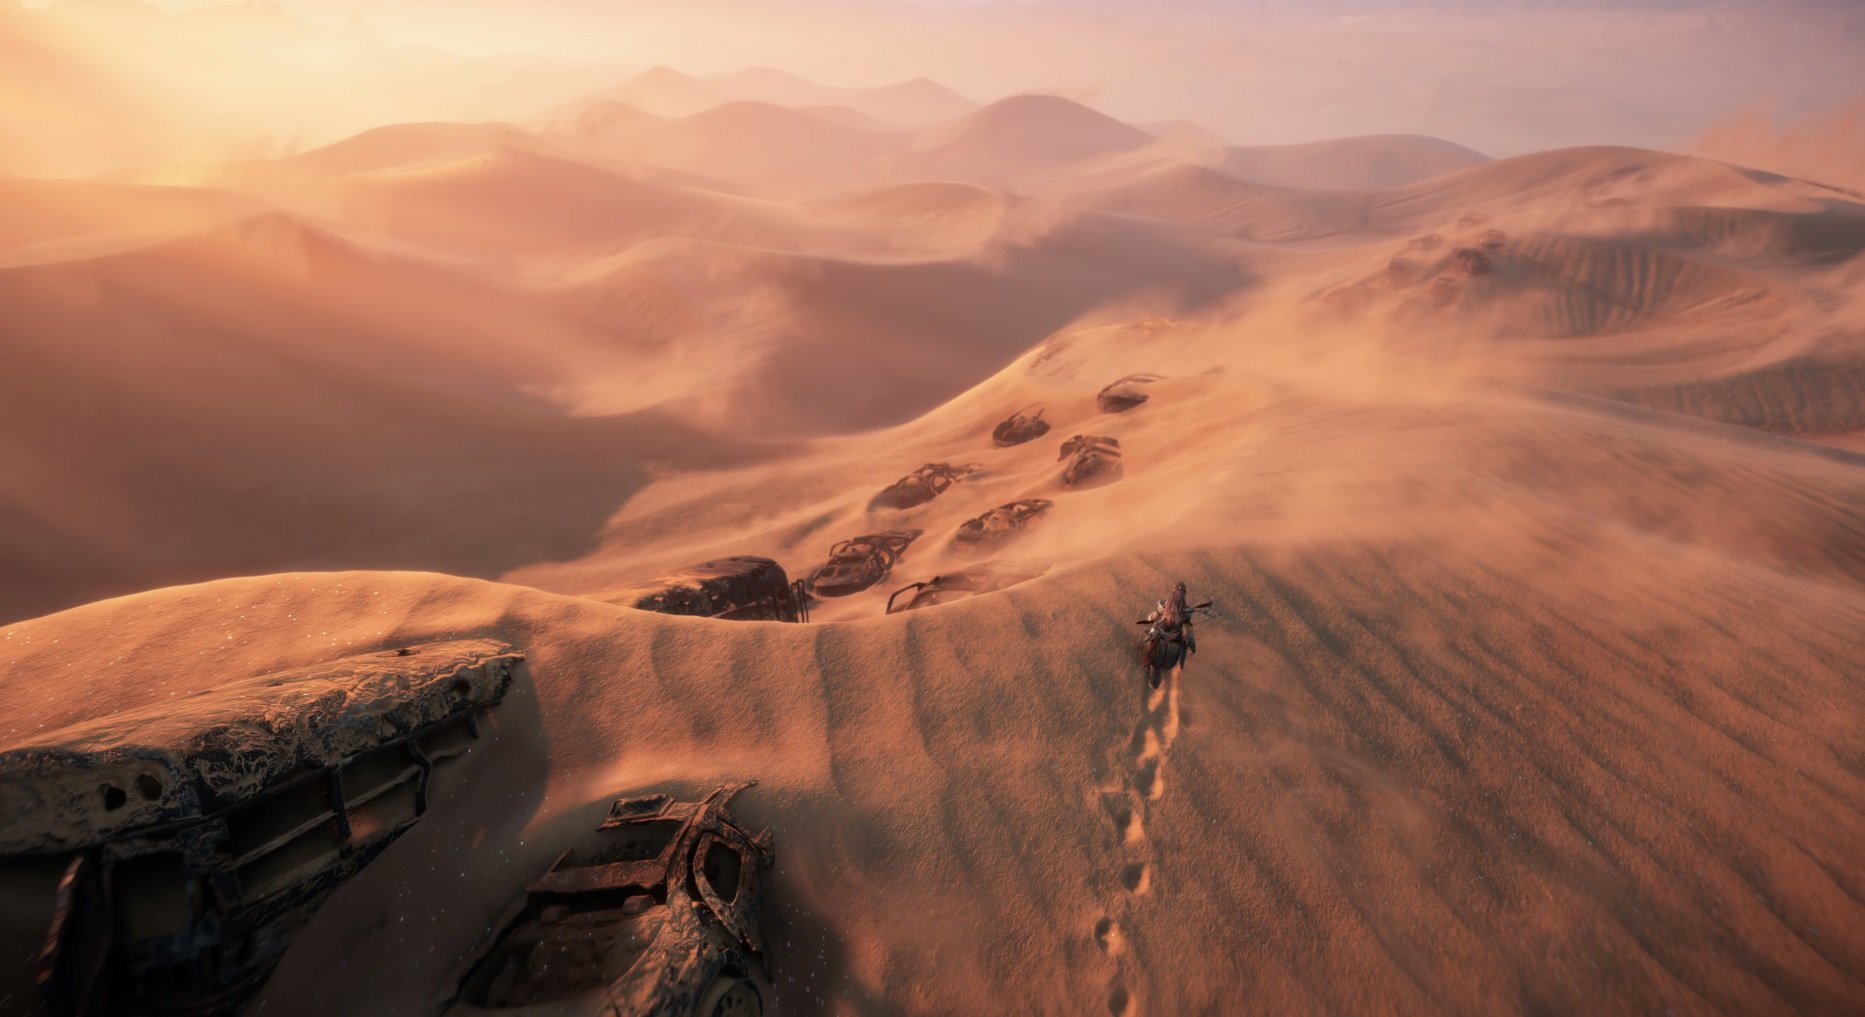 You'll get to explore a wide variety of landscapes in Horizon Forbidden West.